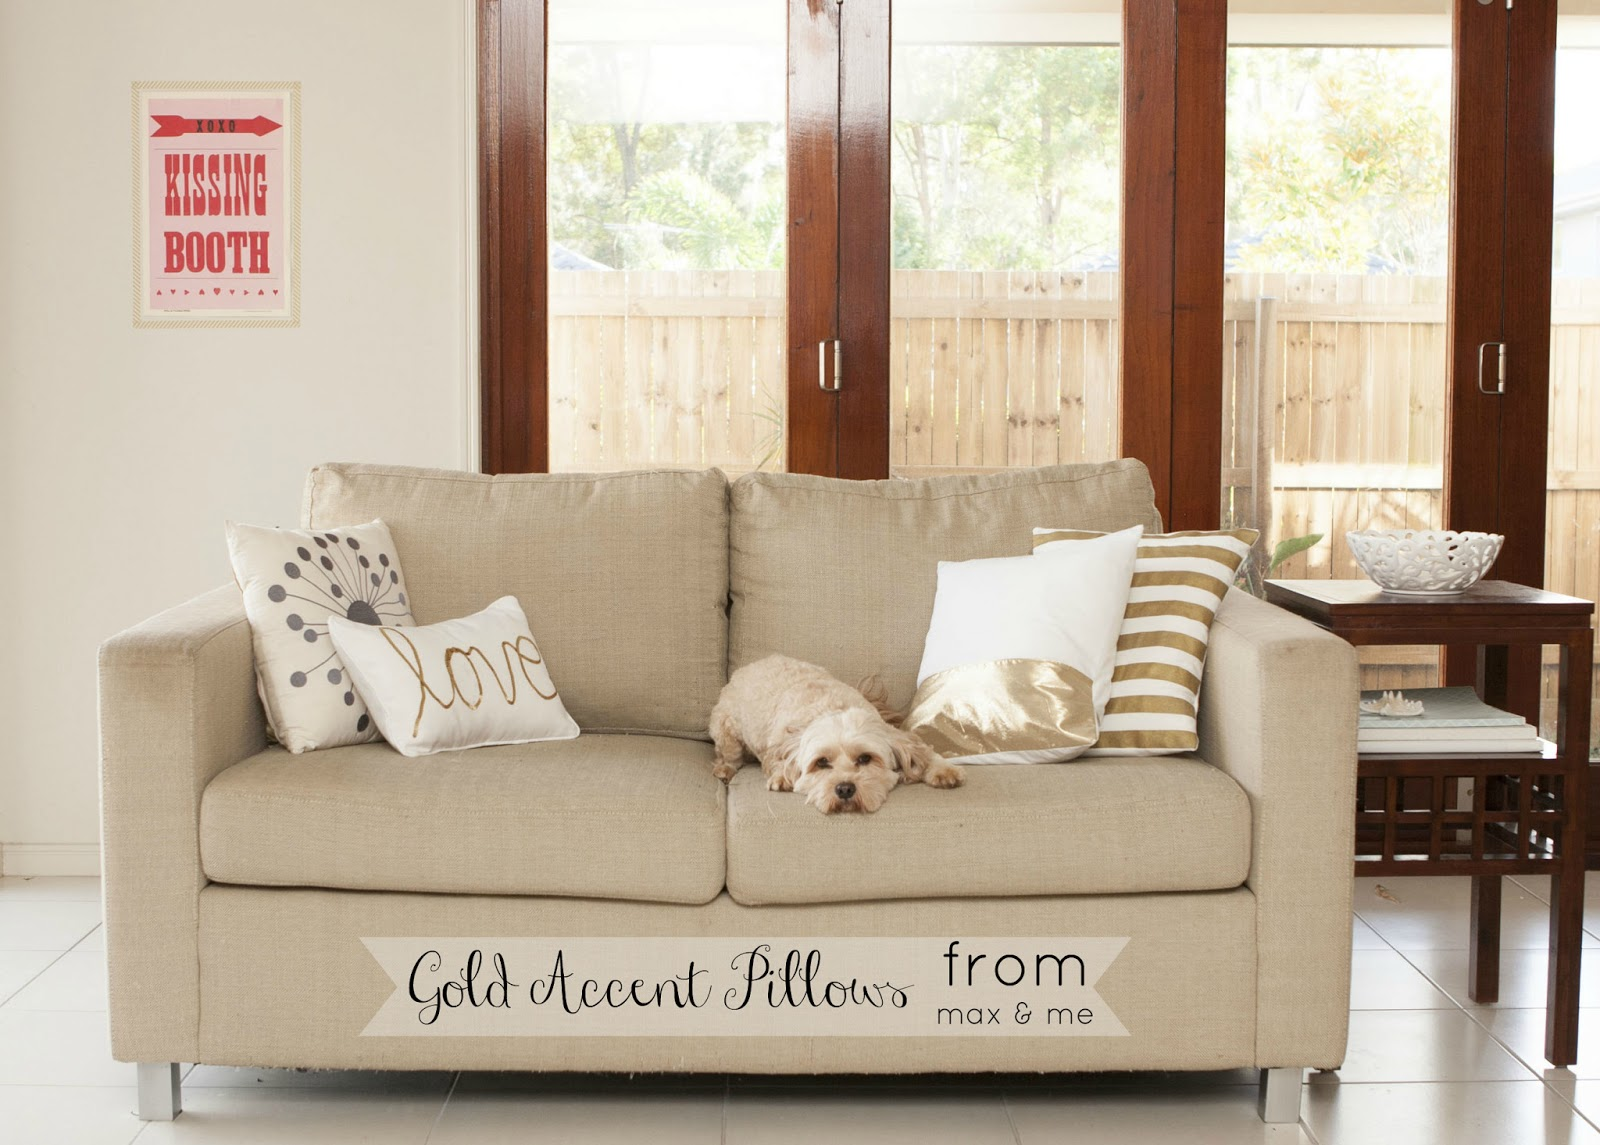 Max & Me: Easy Gold Accent Pillows